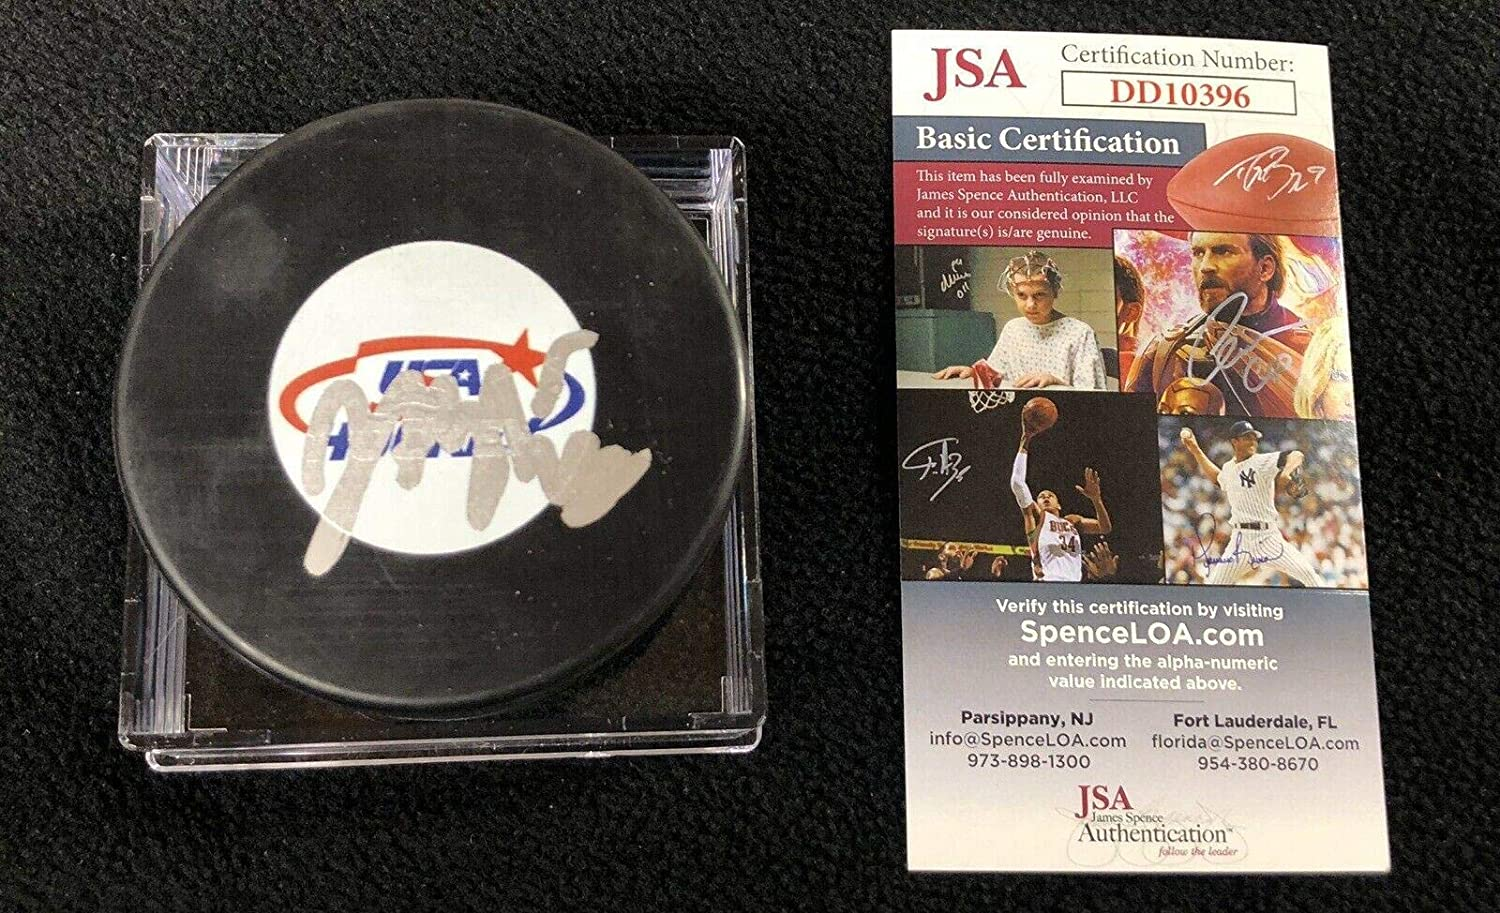 Jack Hughes Signed Puck - USA Authenticated - JSA Certified - Autographed NHL Pucks